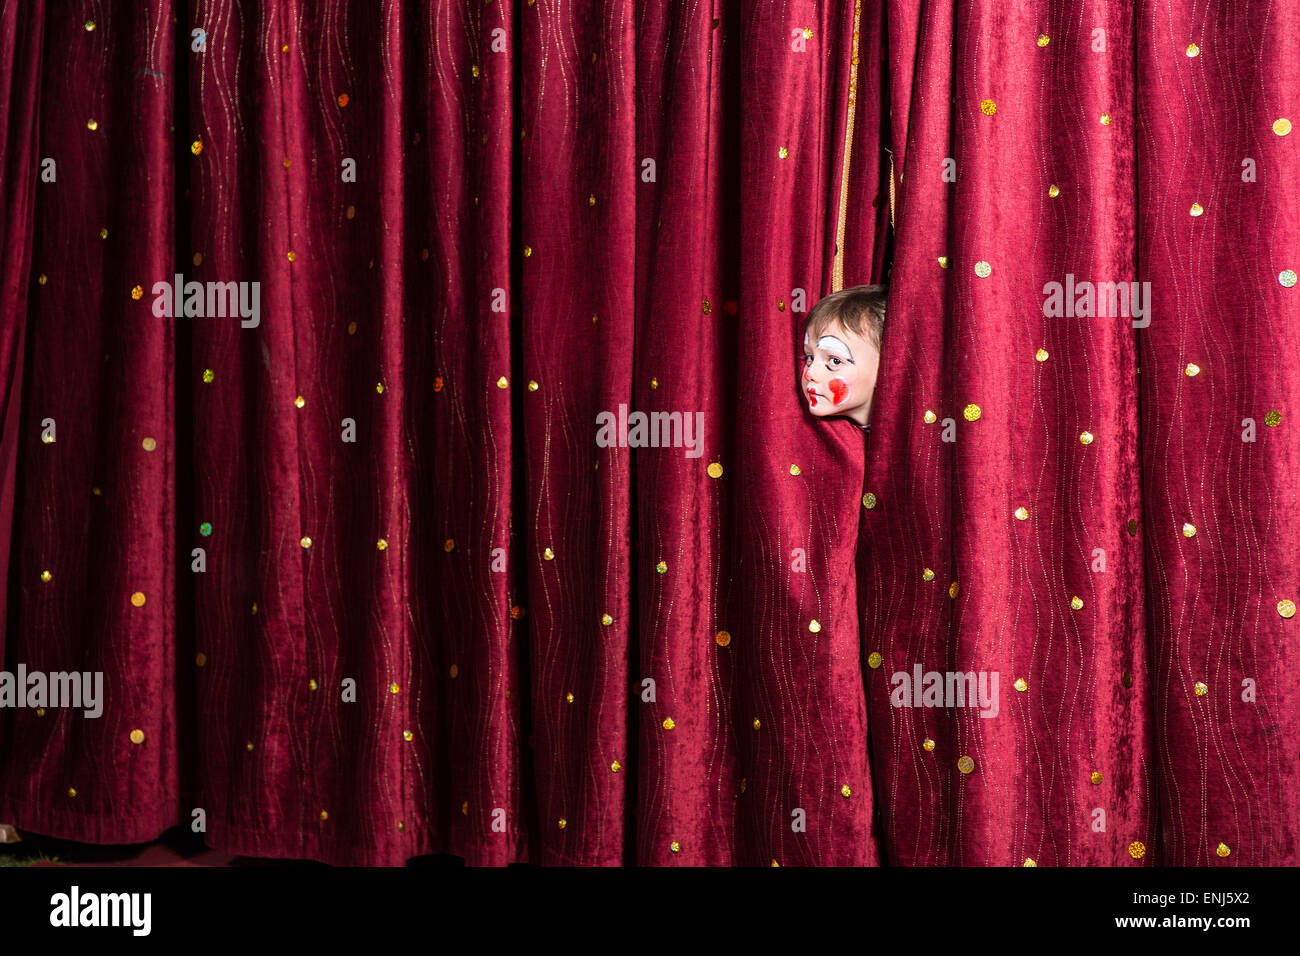 Closed theater curtains - Impatient Little Boy On Stage Poking His Head Out From Between The Closed Curtains As He